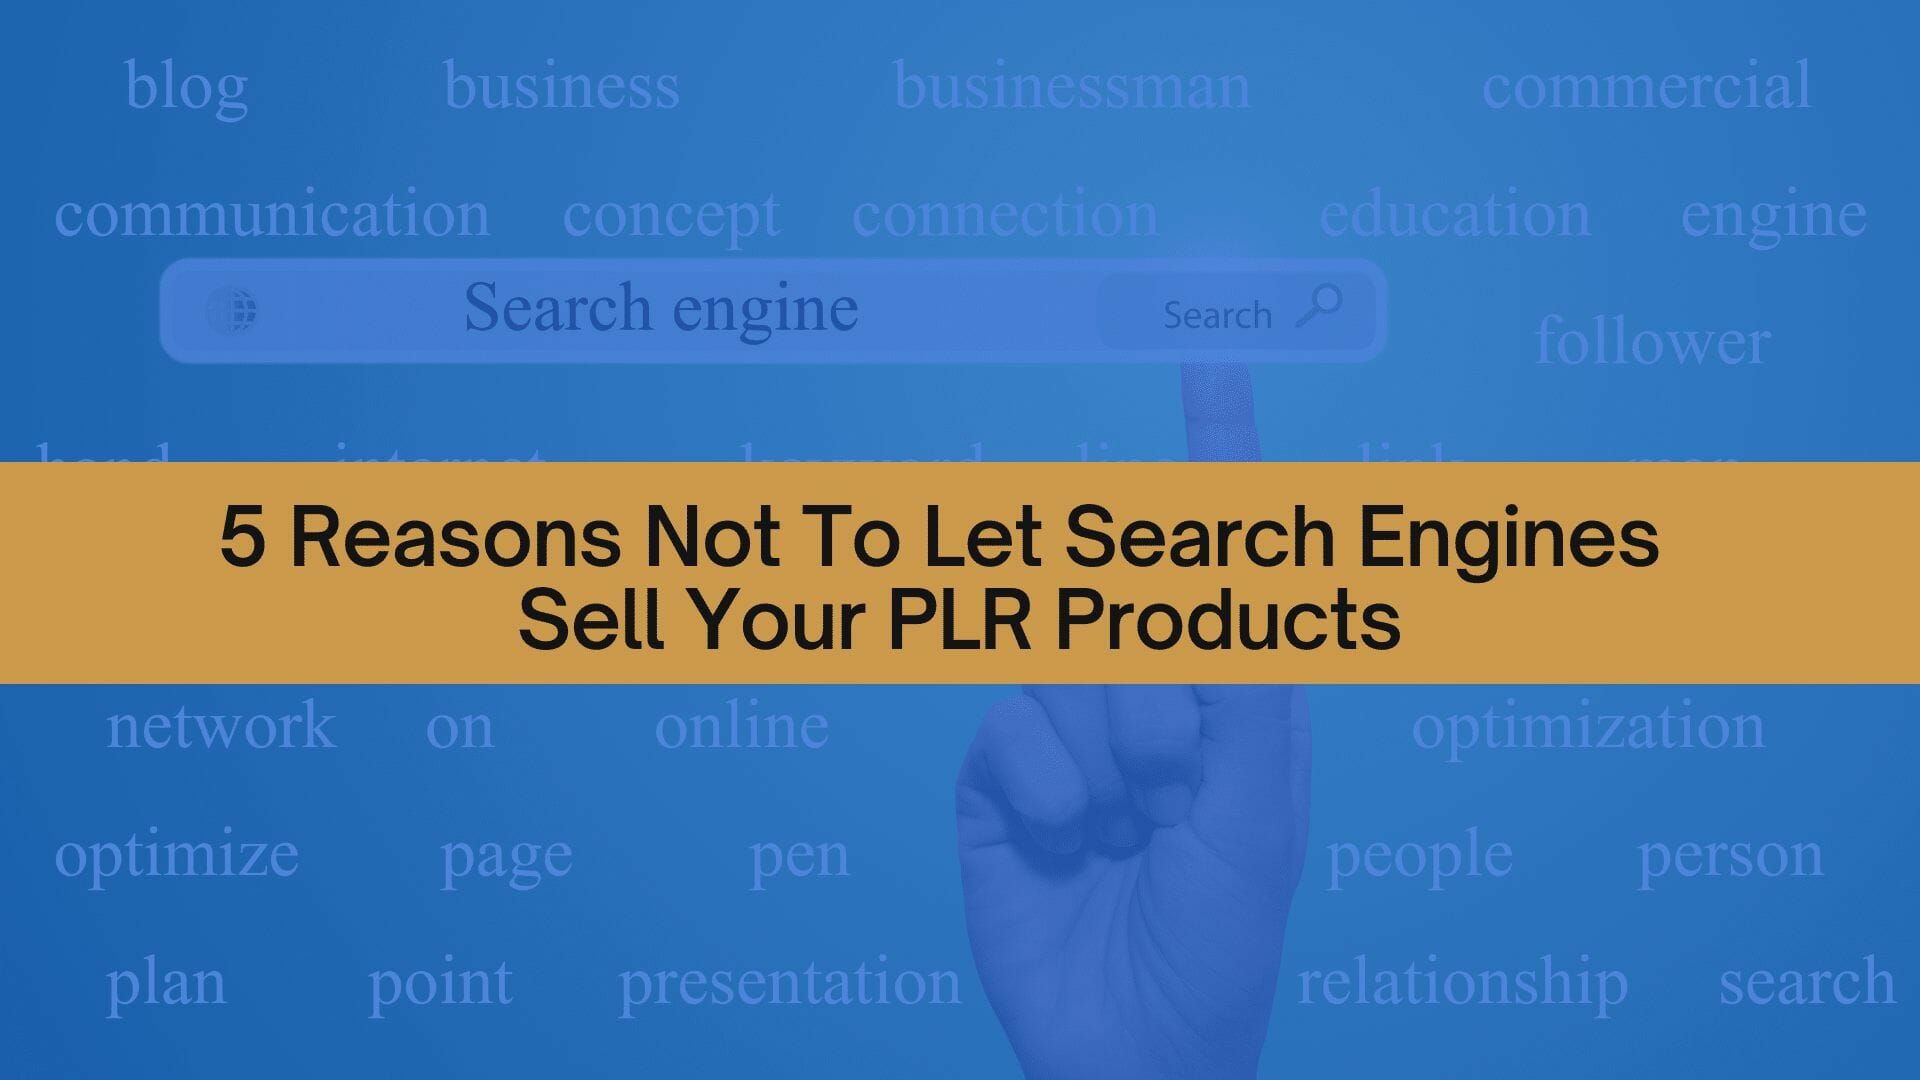 PLRVD 5 reasons not to let search engines sell your PLR